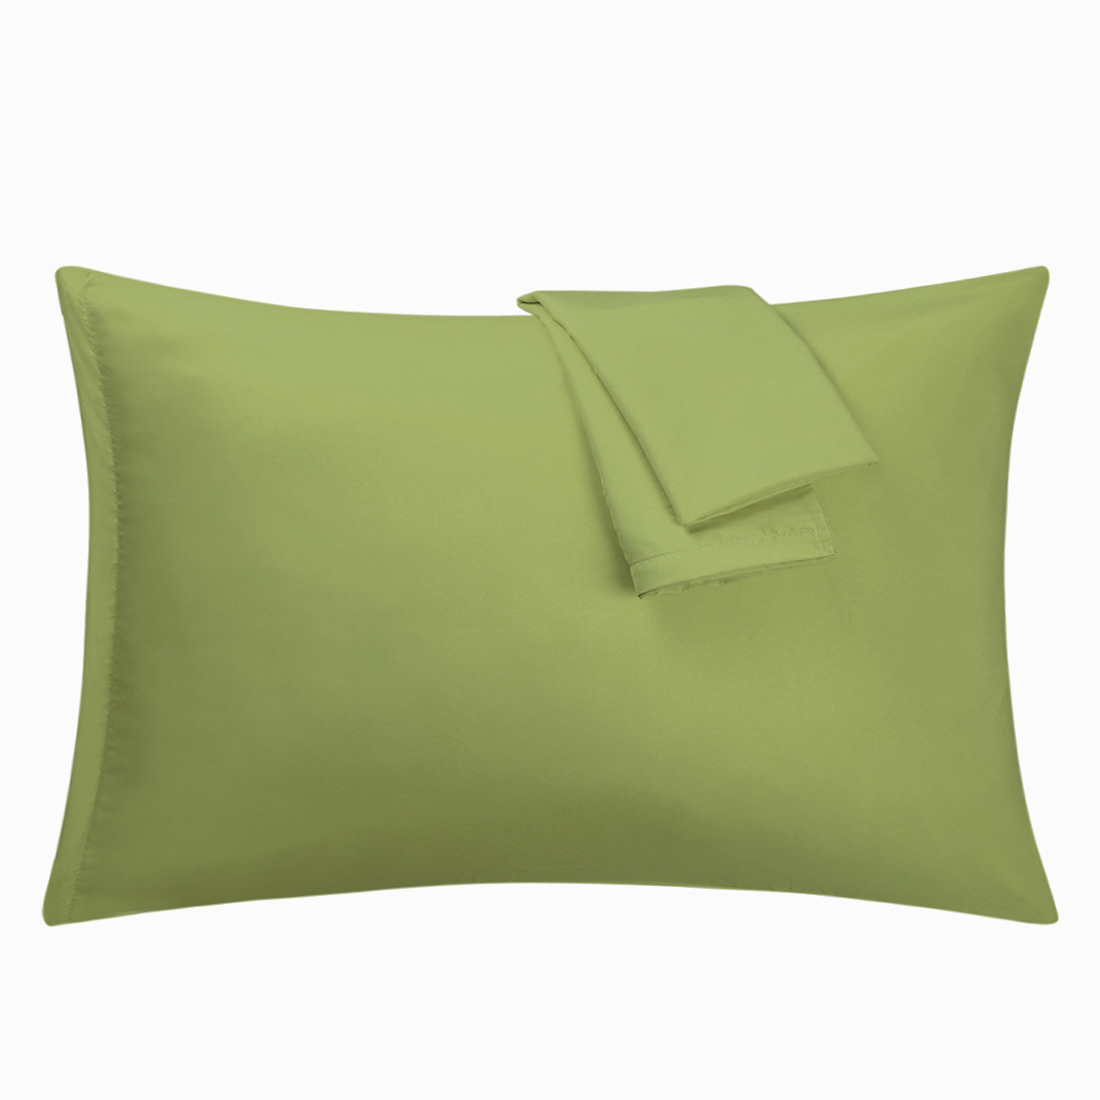 Sage Pillowcases Soft Microfiber Pillow Case Cover with Zipper King, 2 Pack